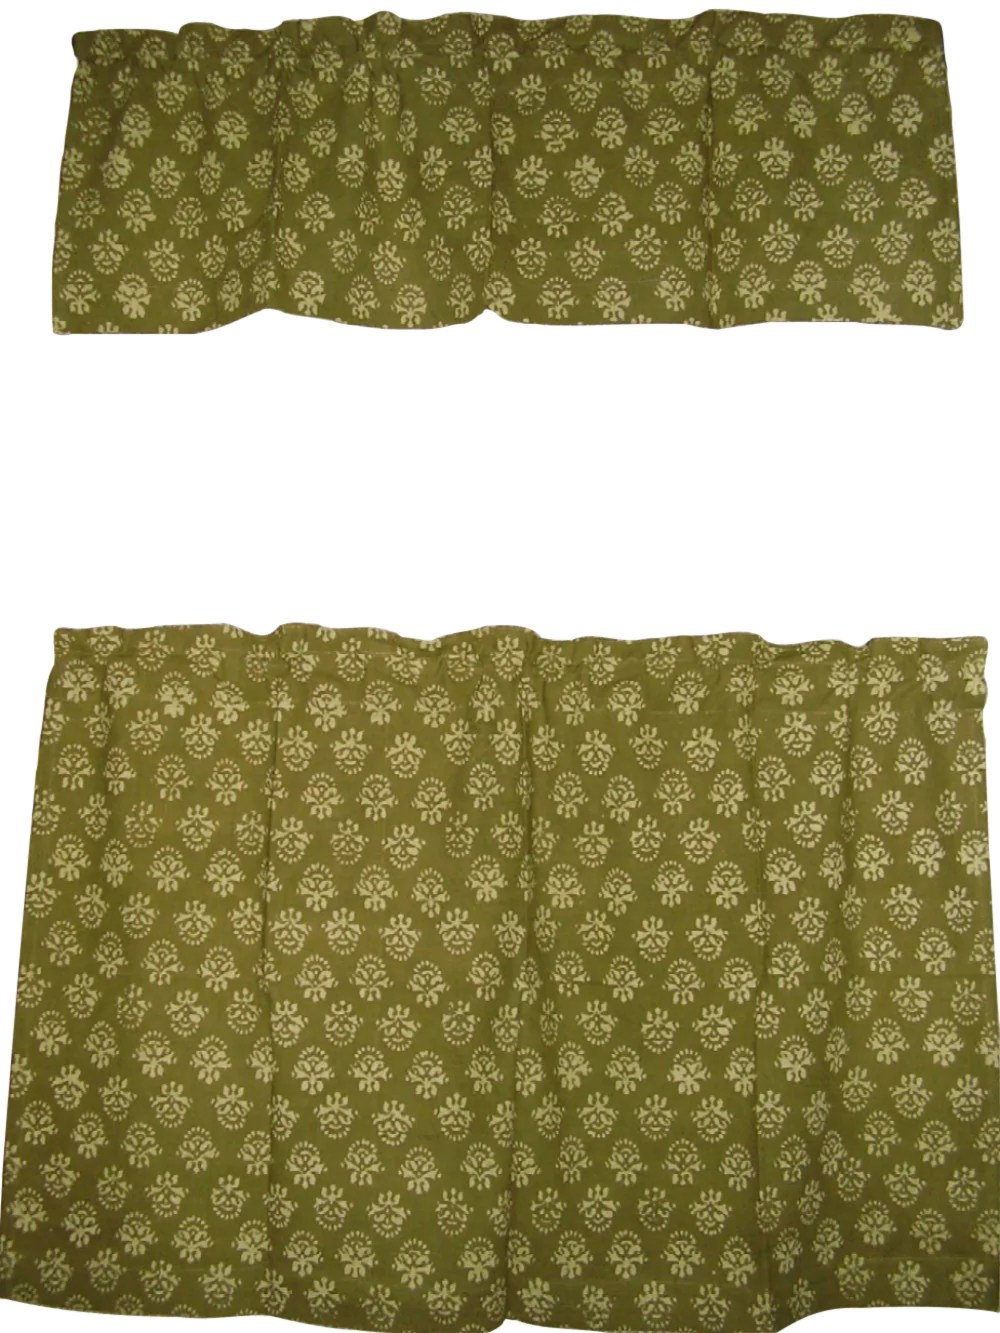 cafe curtain with valance block print cotton 44 x 30 olive green